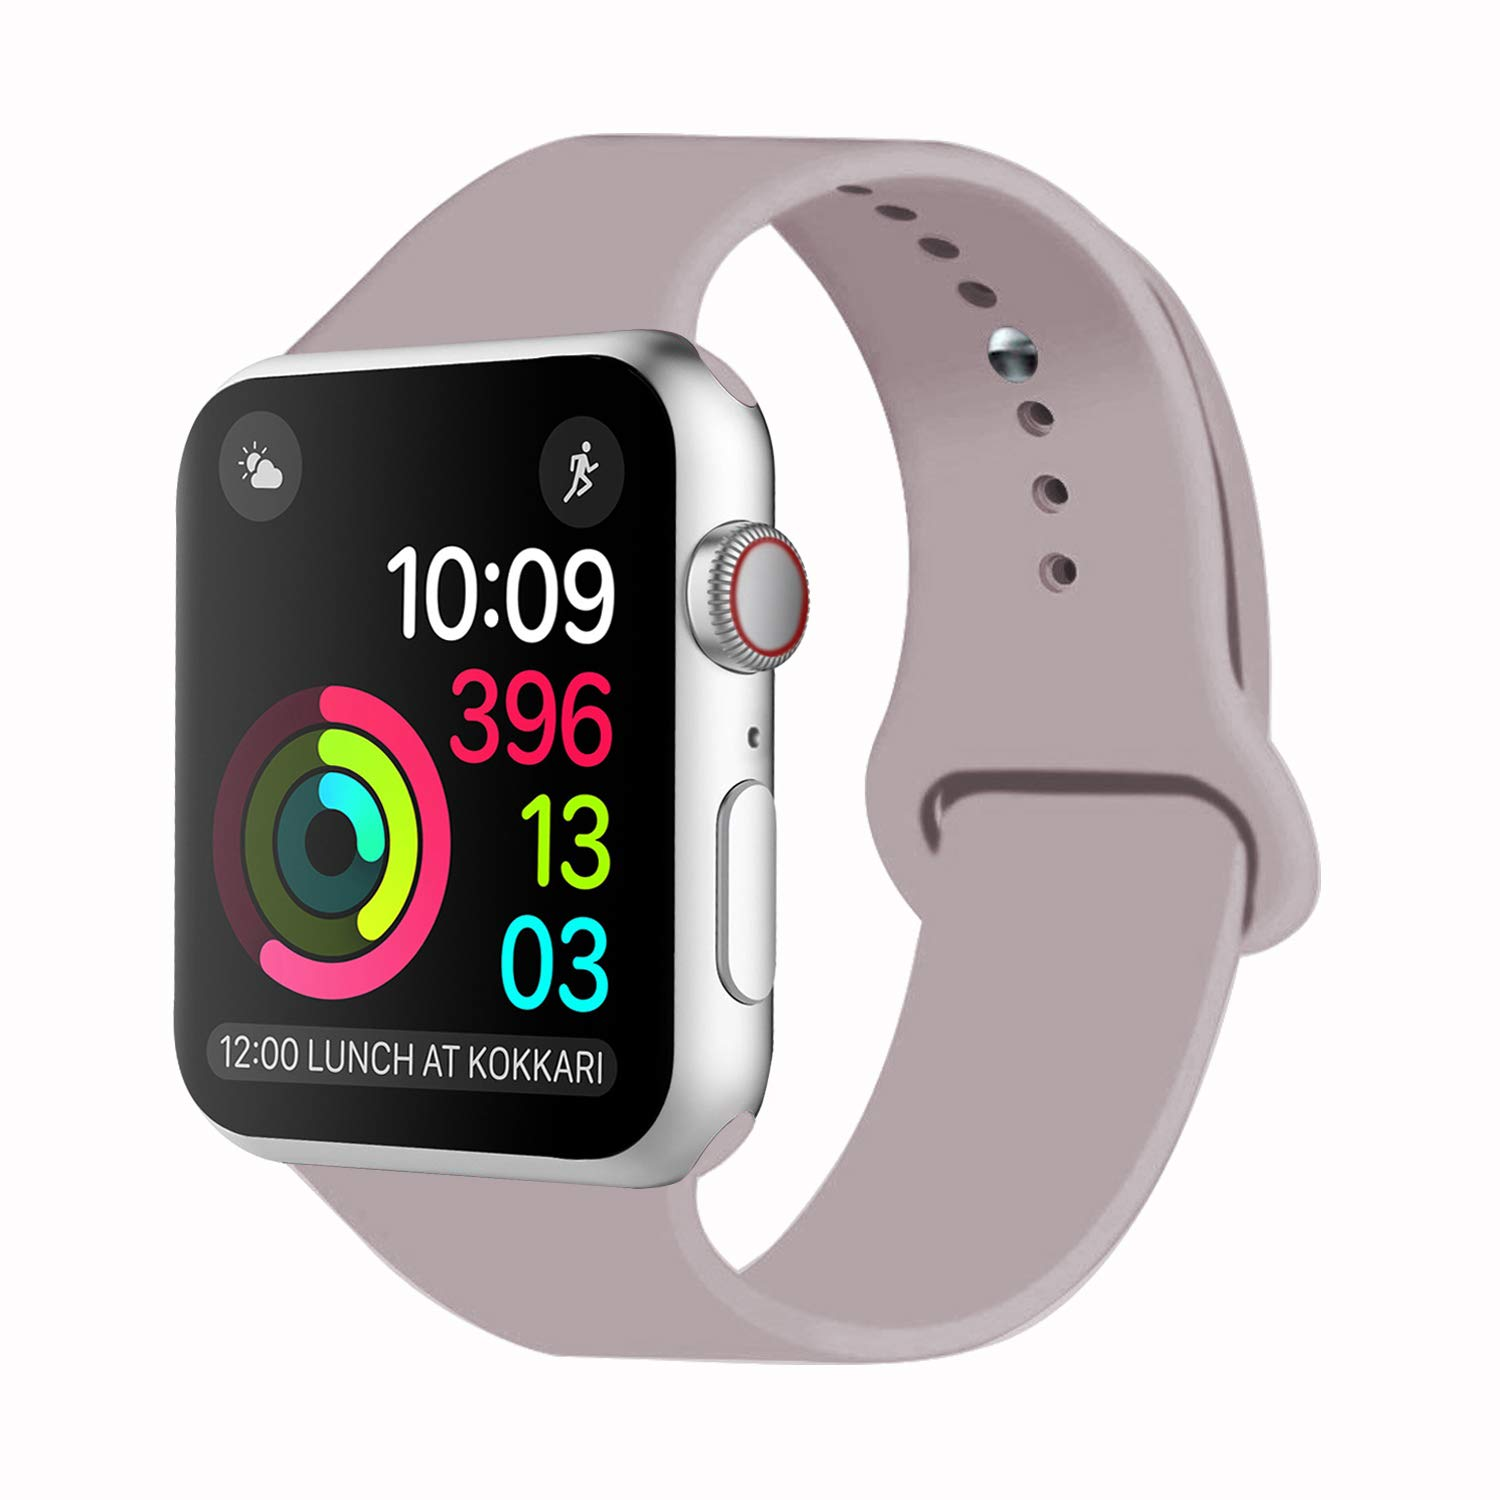 IDon Smart Watch Sport Band, Soft Silicone Replacement Sports Band Compatible for Apple Watch Band 2018 Series 4/3/2/1 38MM 40MM 42MM 44MM Apple Watch All Models product image